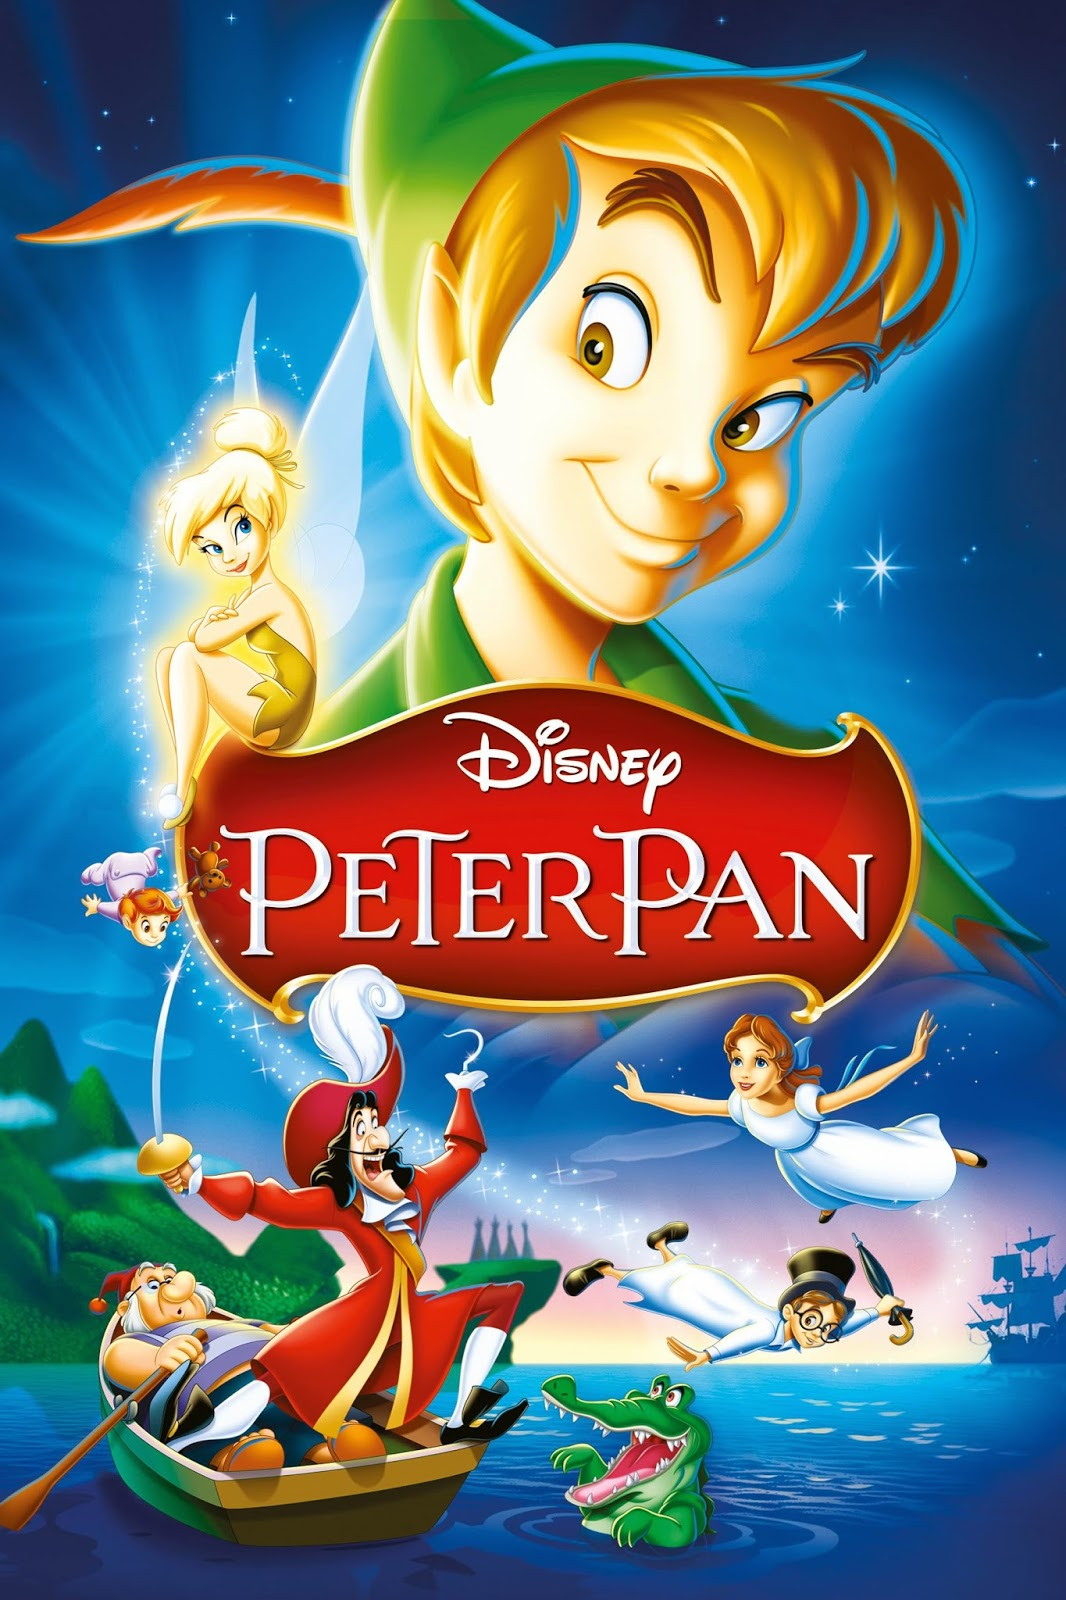 download peter pan disney movie free